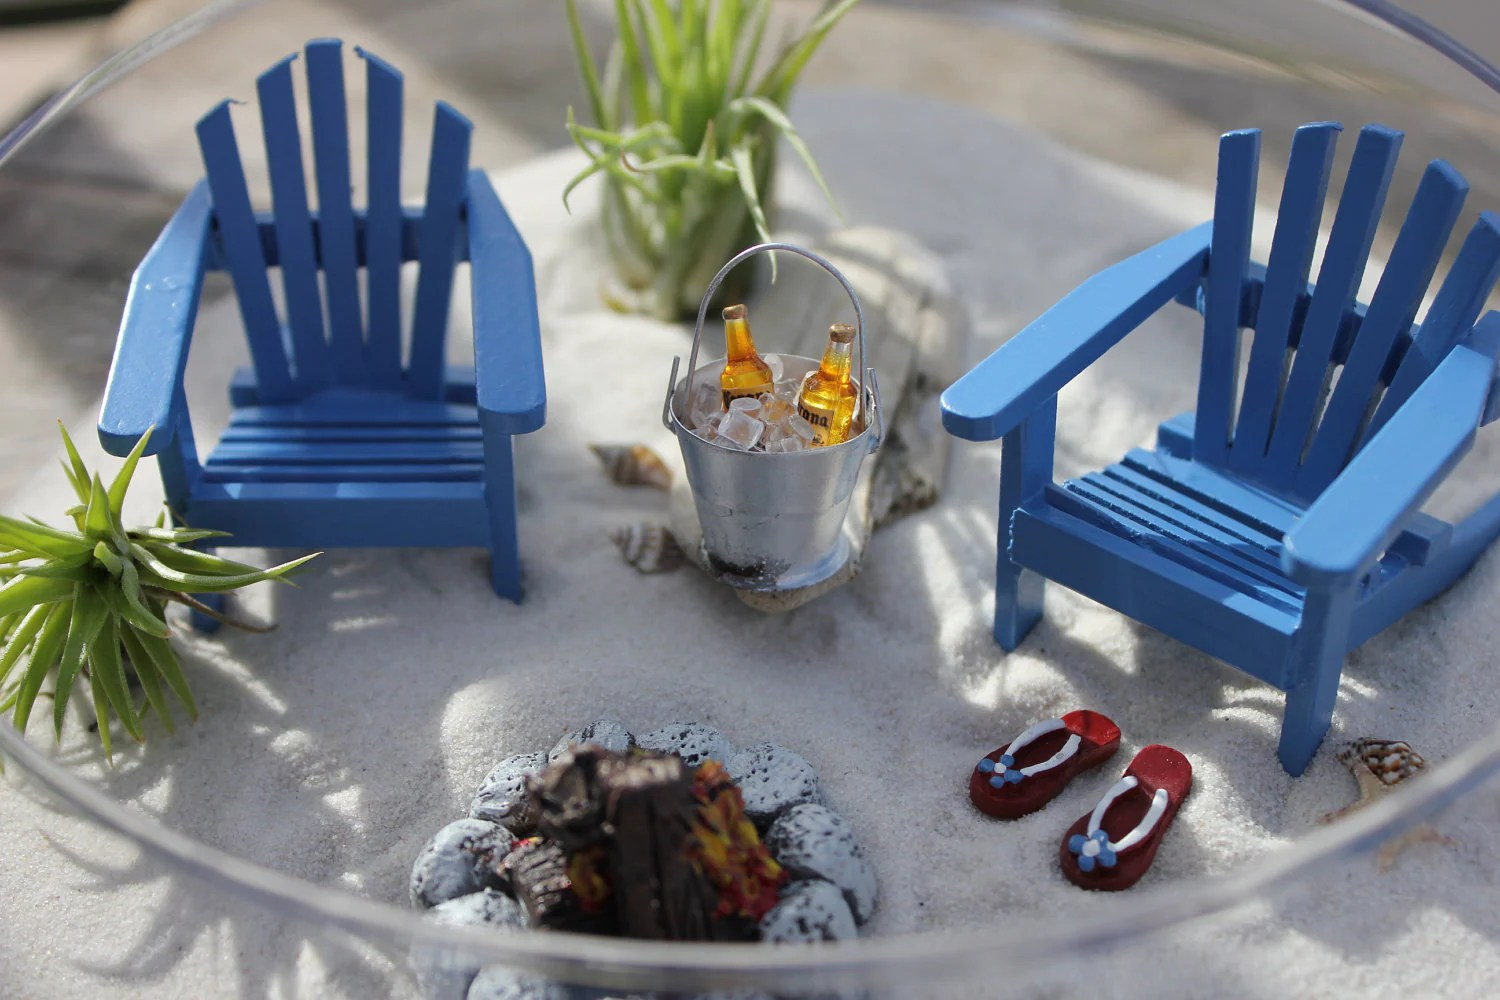 adirondack chair photo frame favors folding exercise miniature beach vacation with a campfire by